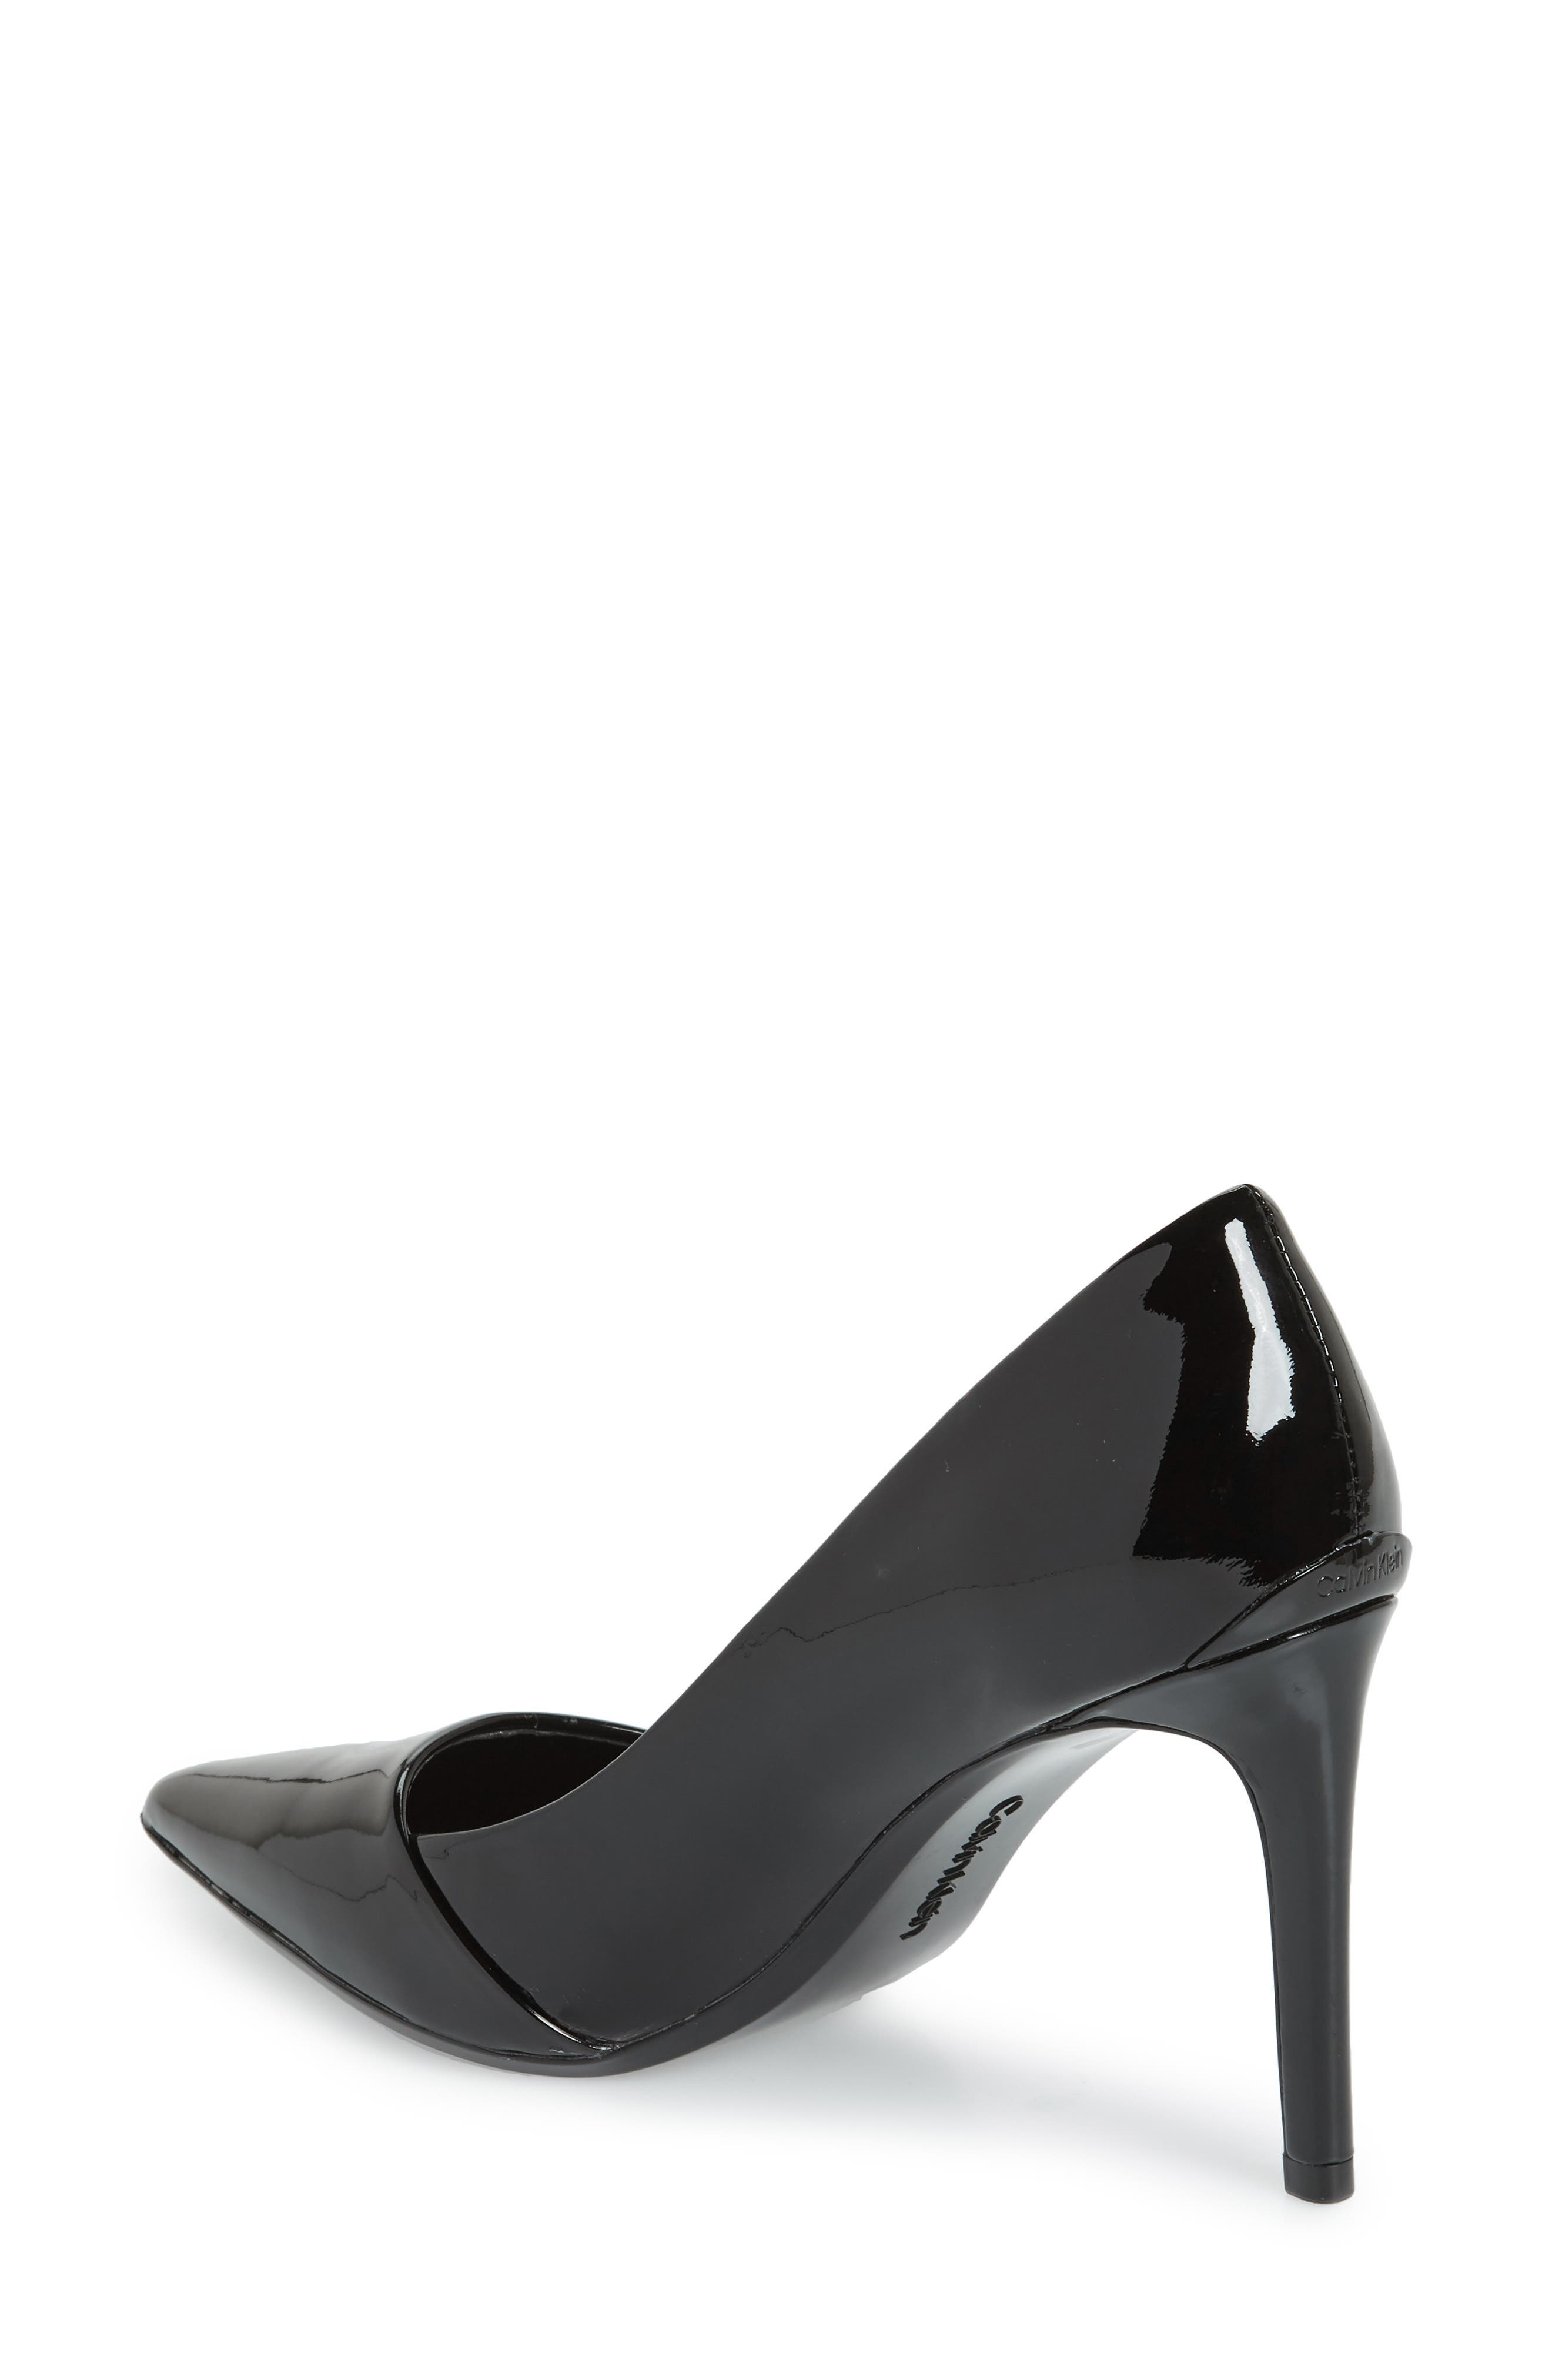 Roslyn Pointed Toe Pump,                             Alternate thumbnail 2, color,                             BLACK PATENT LEATHER